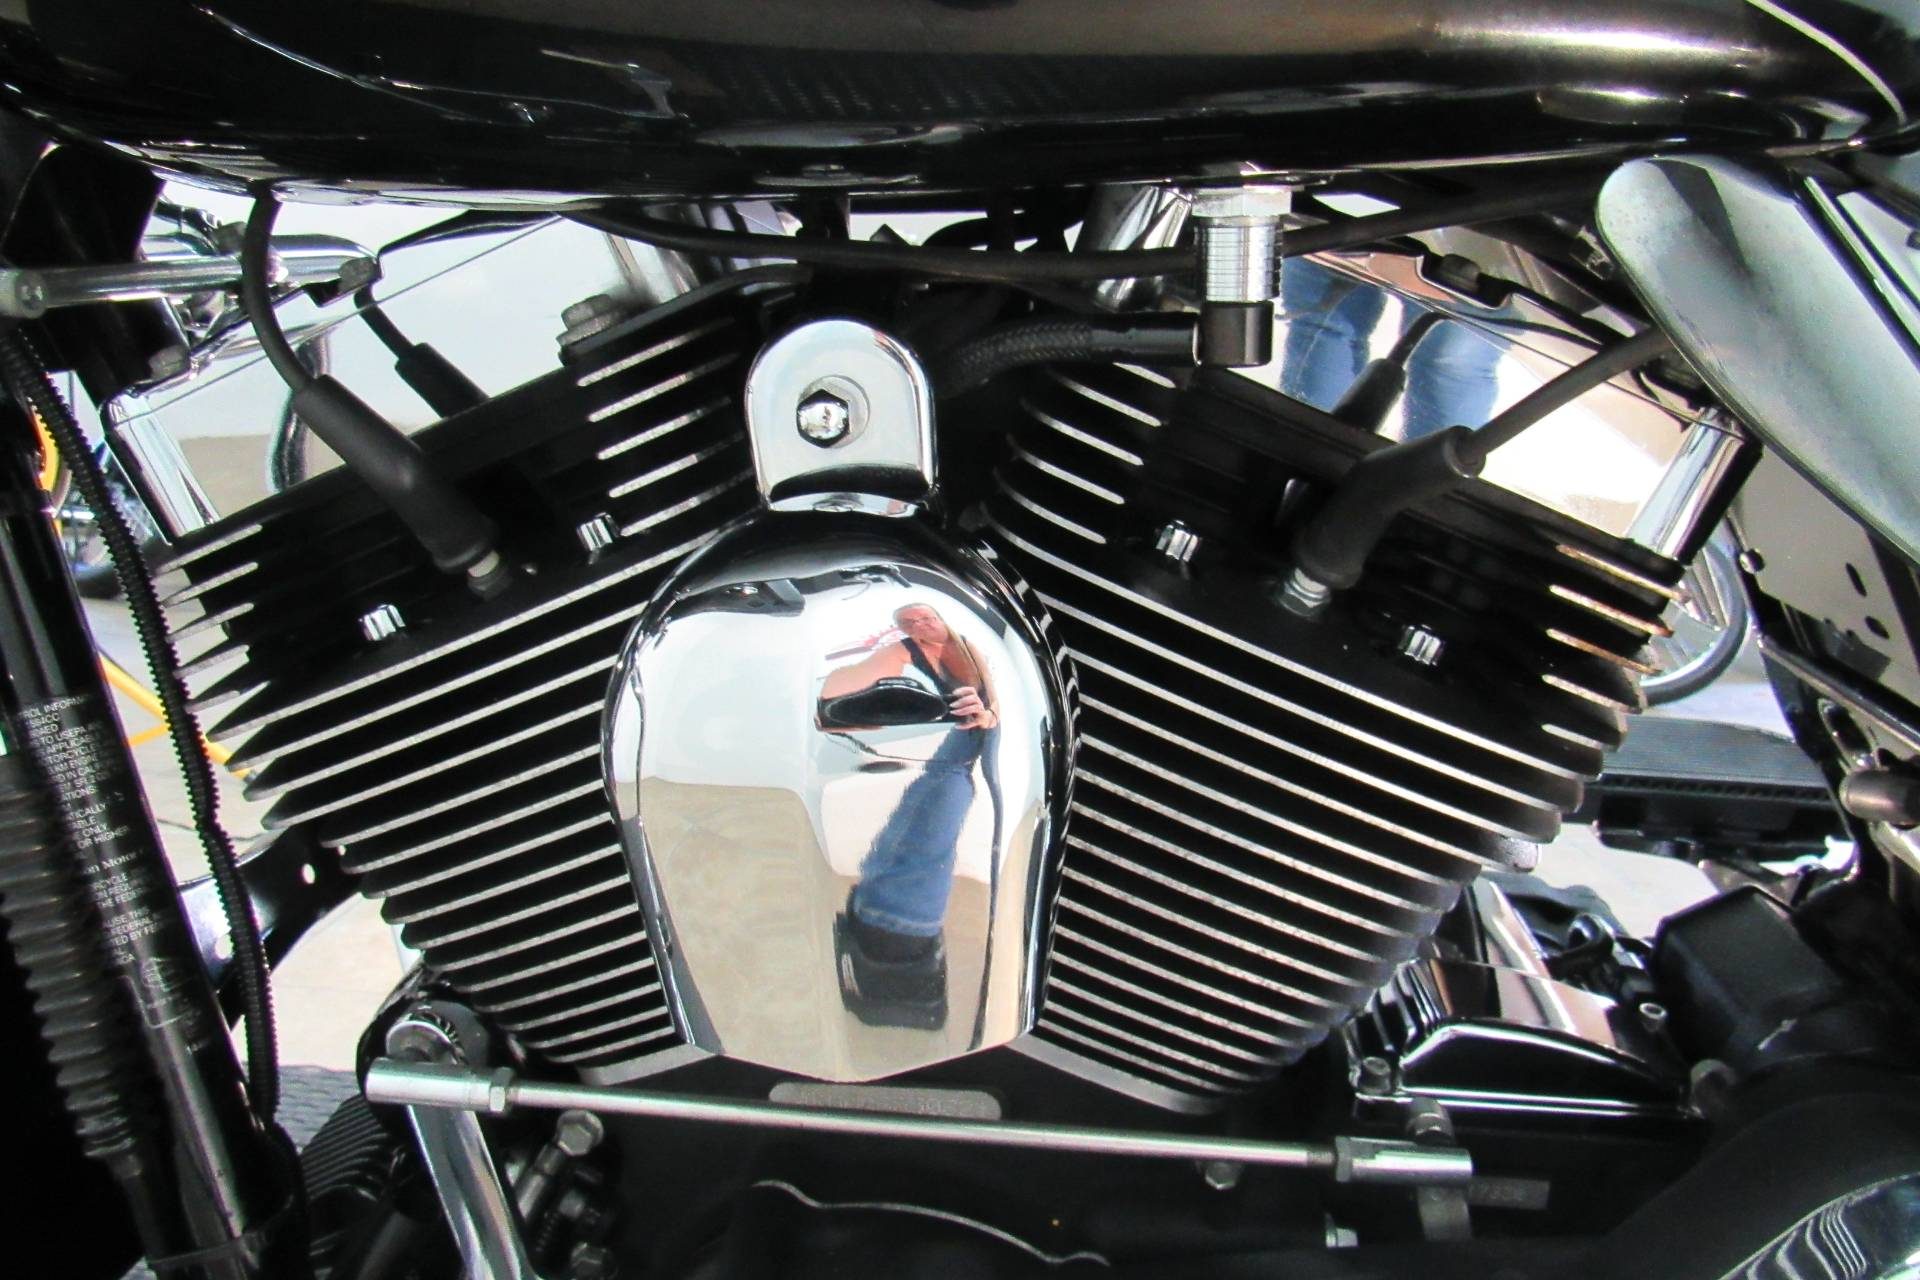 2010 Harley-Davidson Road Glide® Custom in Temecula, California - Photo 18